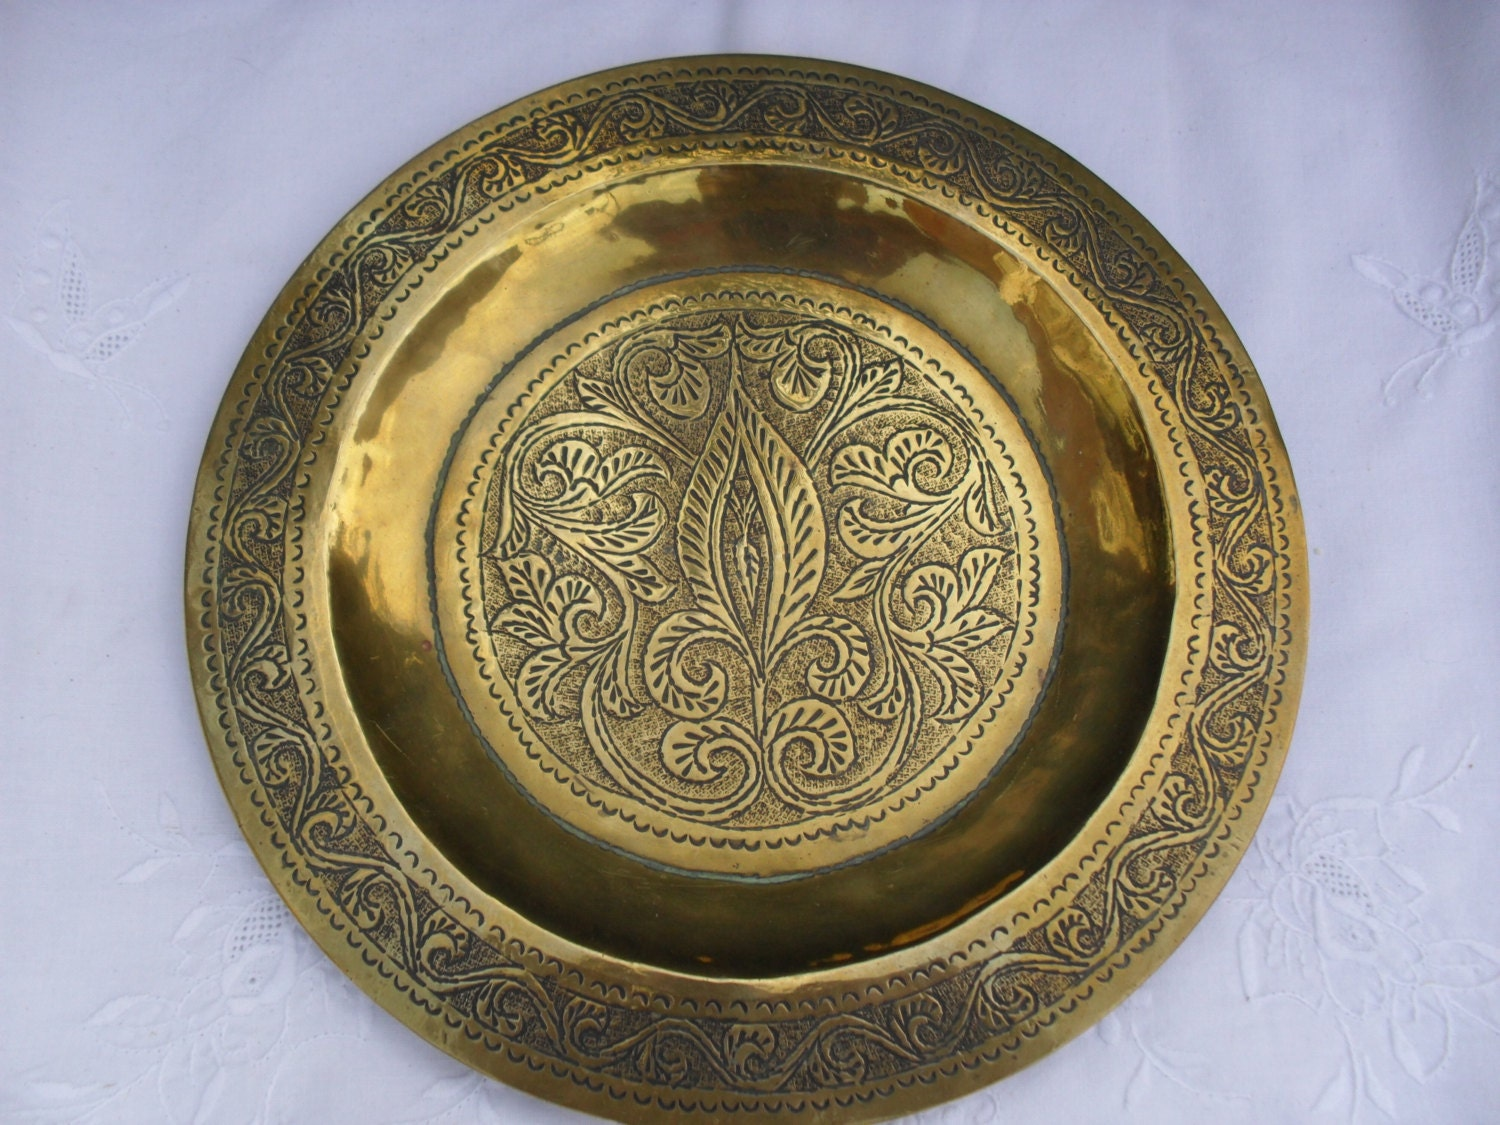 Brass Wall Plates Decor : Vintage brass wall plate decor engraved design inch